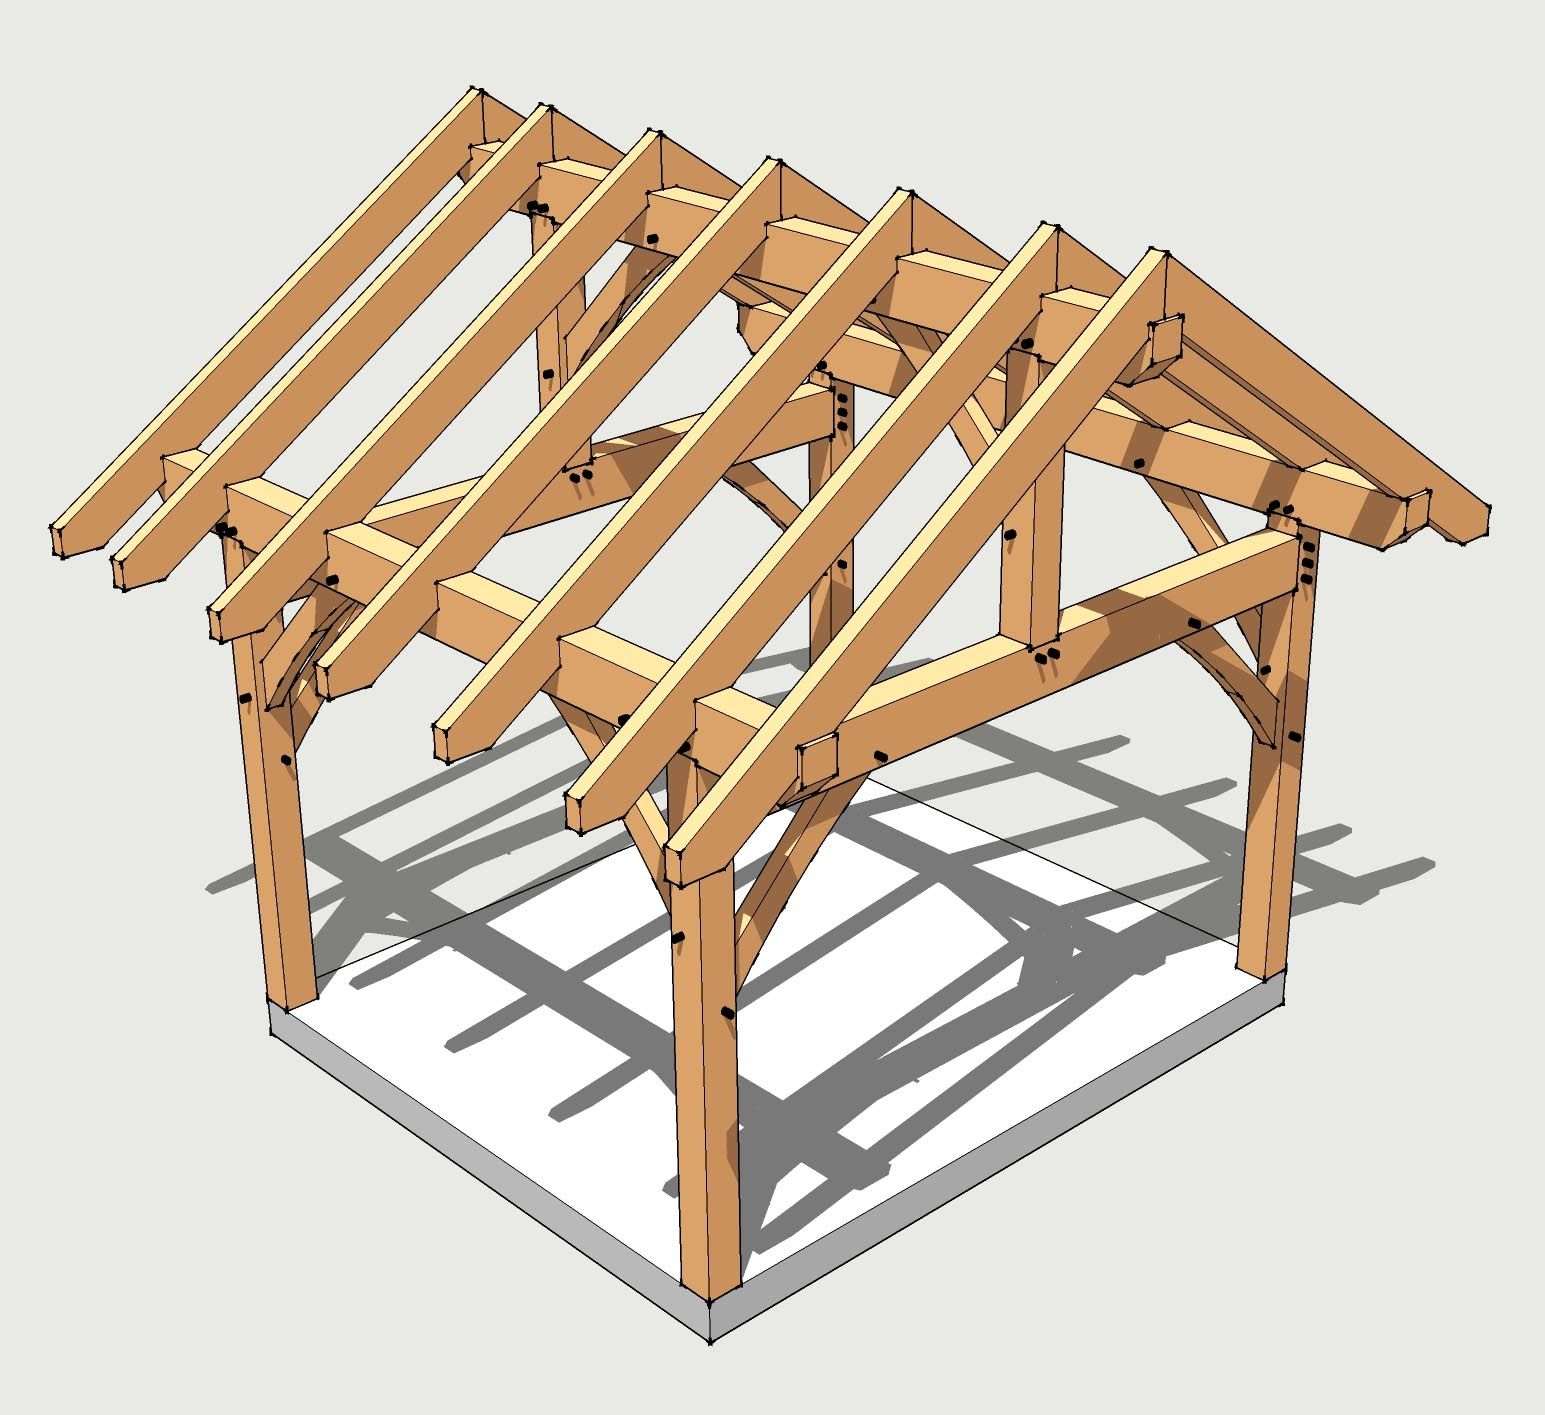 Square Gazebo Plans 12x12 Timber Frame Plans Timber Frame Construction Timber Frame Homes